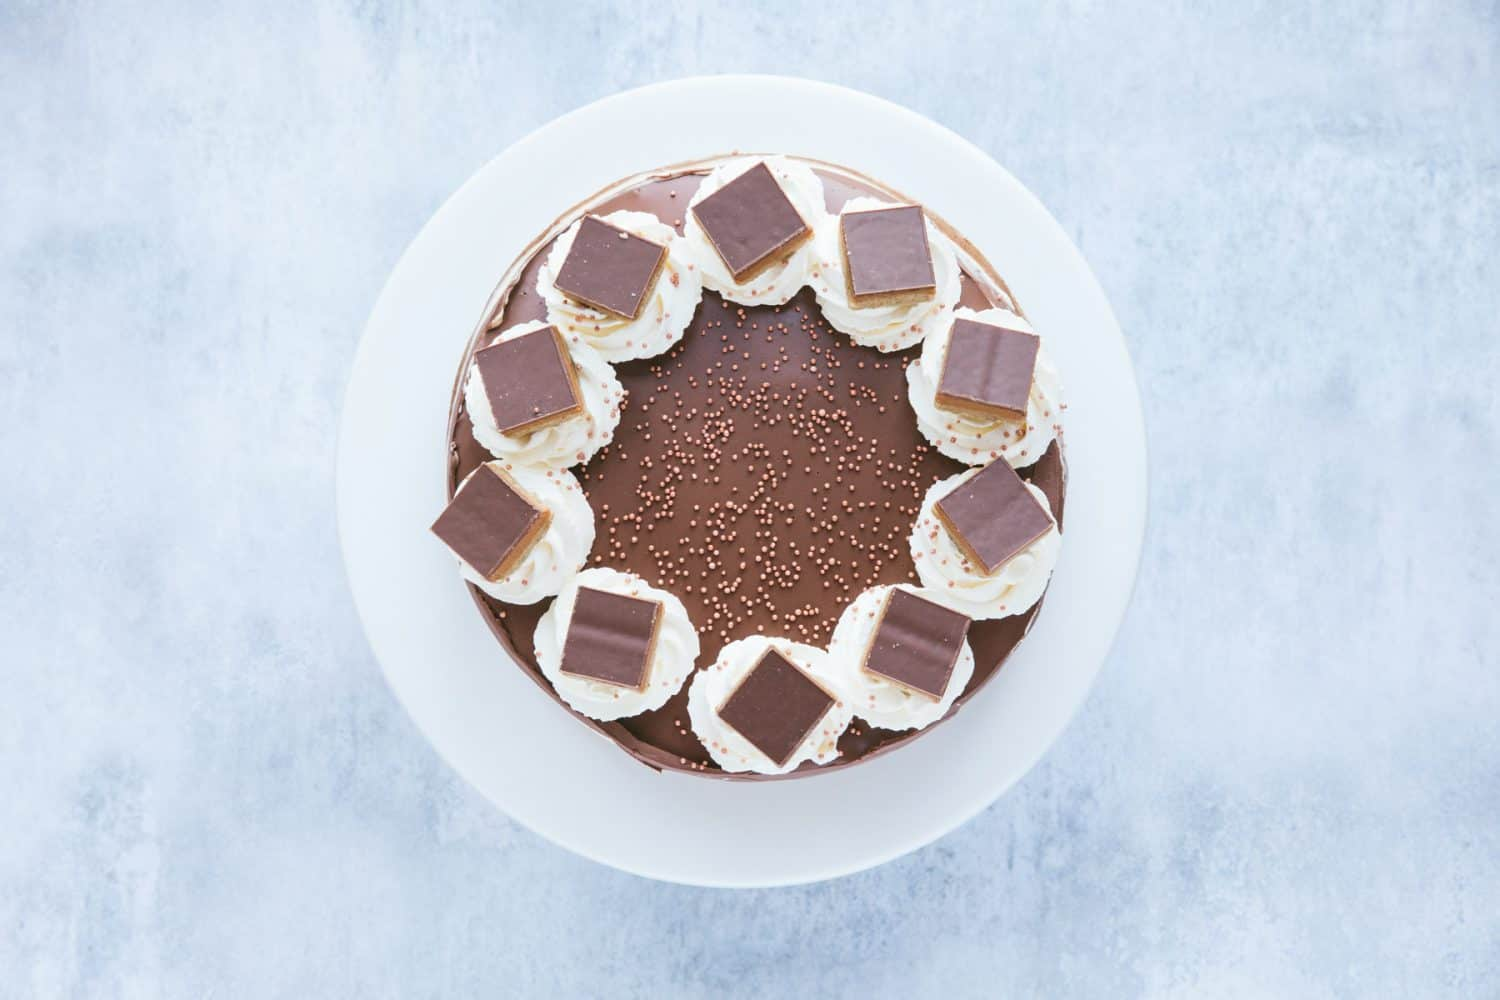 A cheesecake with chocolate toppings and gold coloured sprinkles.